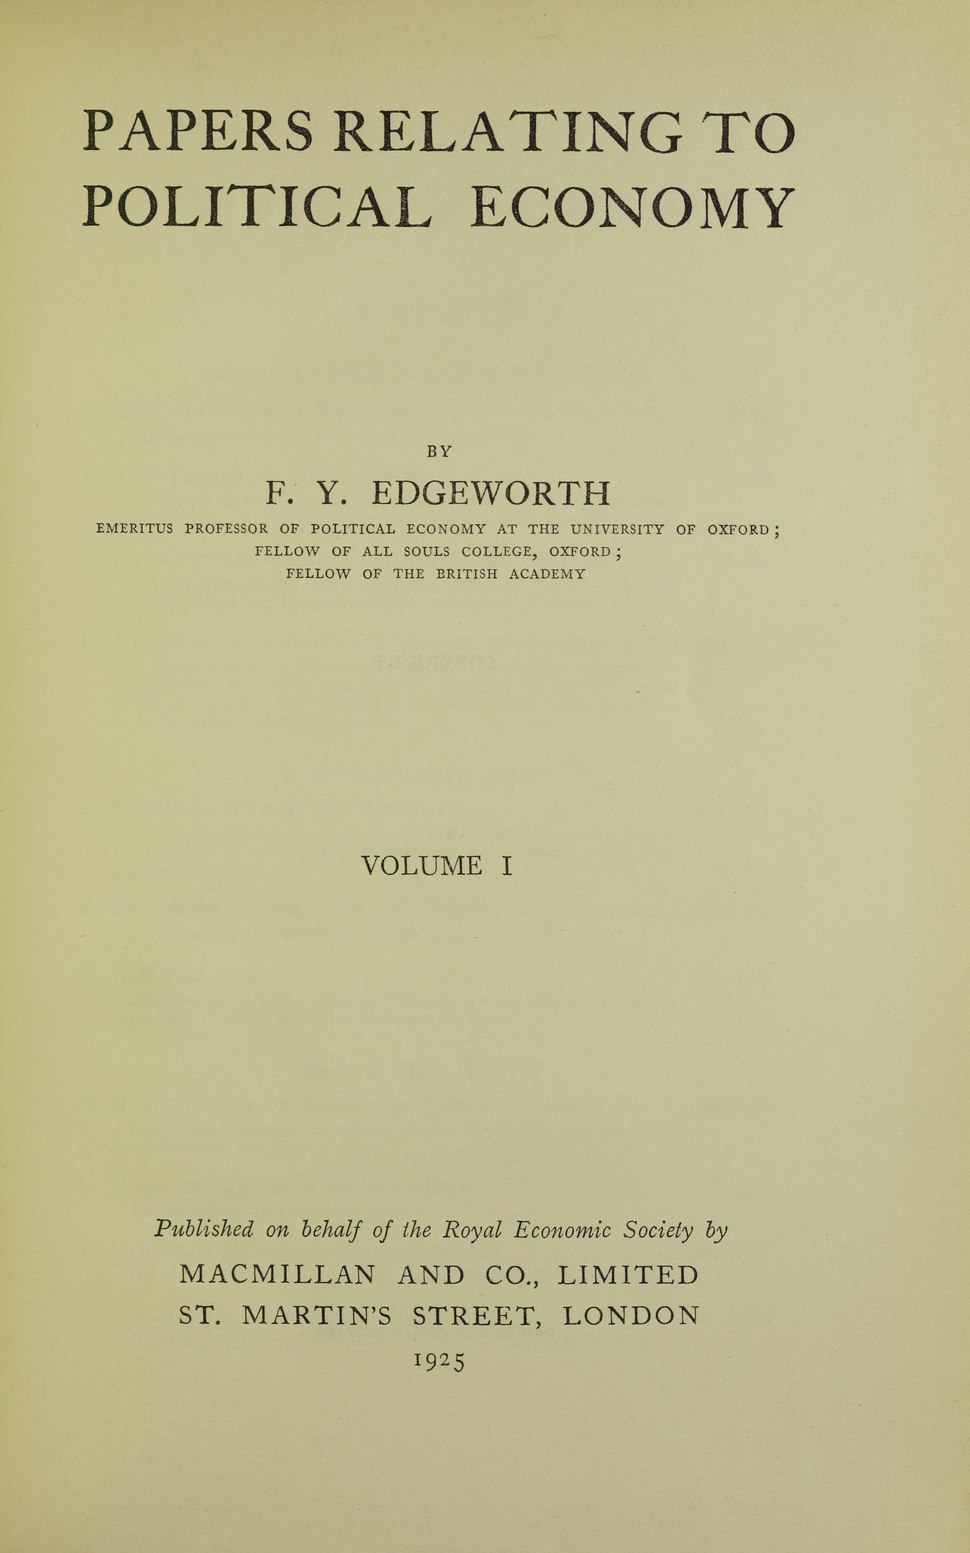 Edgeworth - Papers relating to political economy, 1925 - 5771271